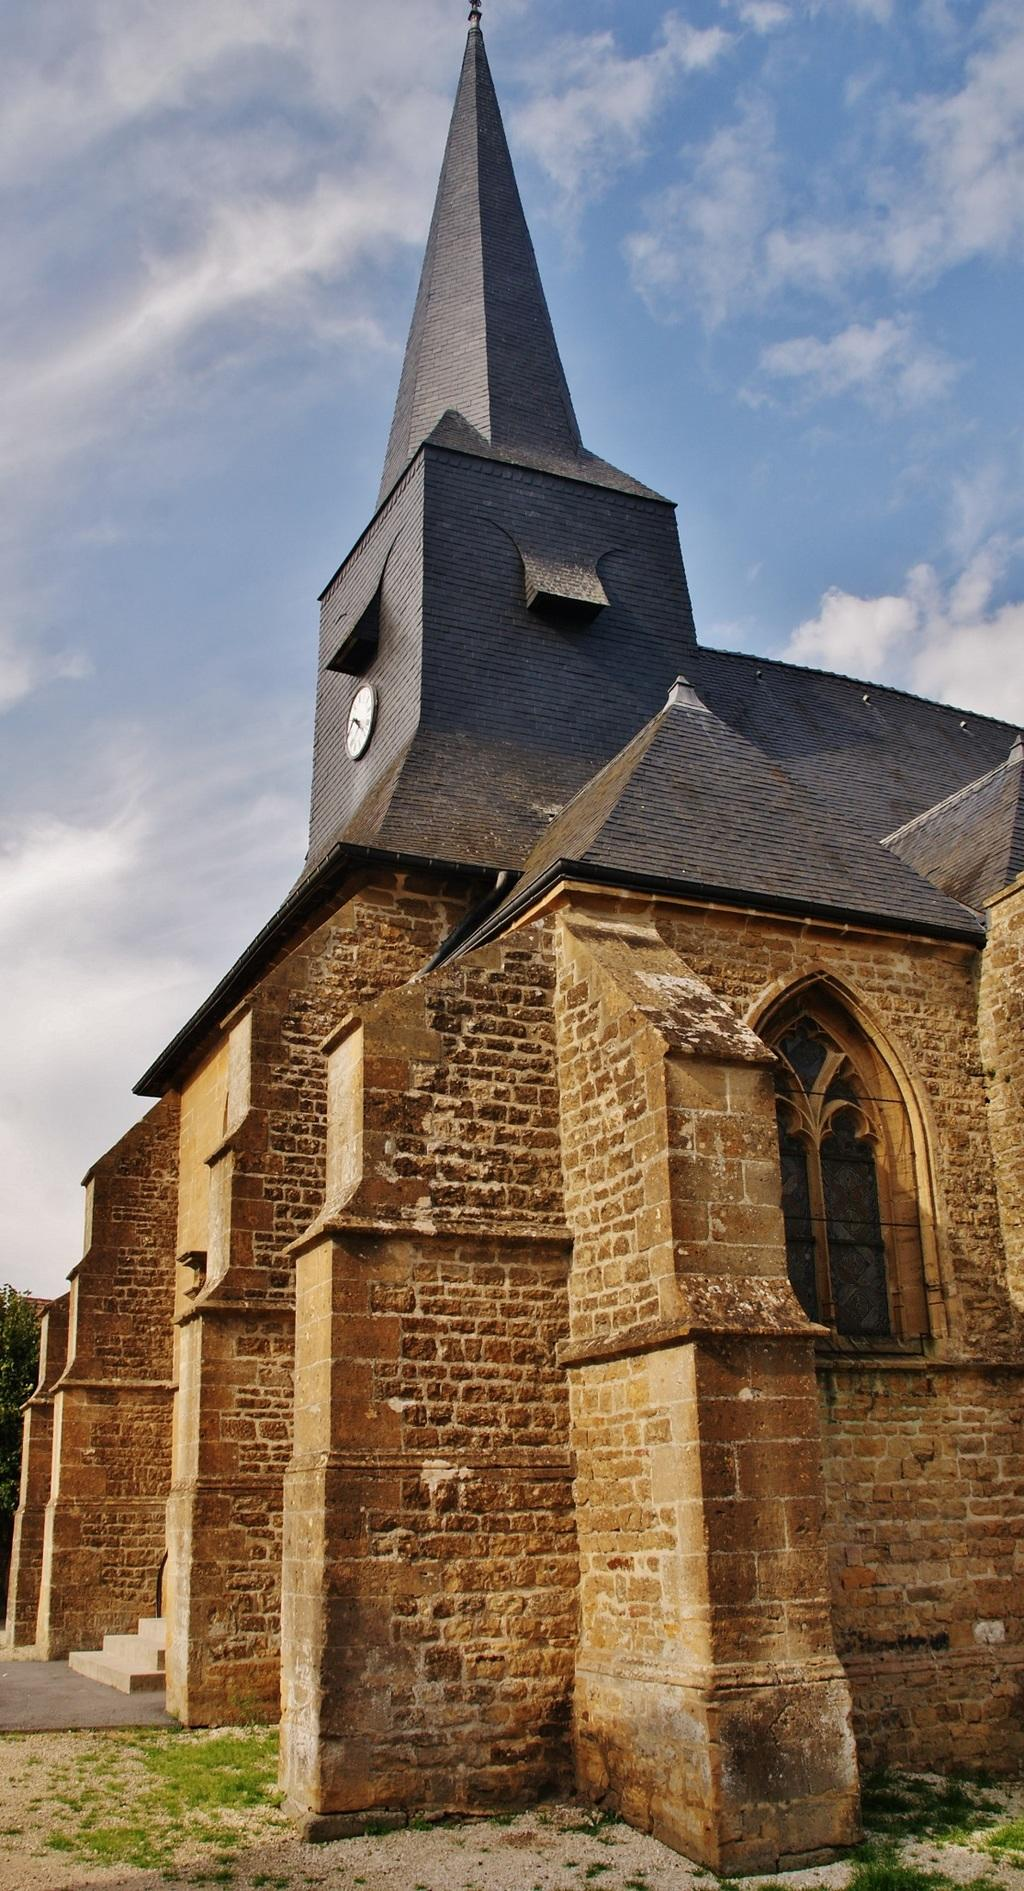 St. Peter's Church, French Heritage monument to Villers semeuse.